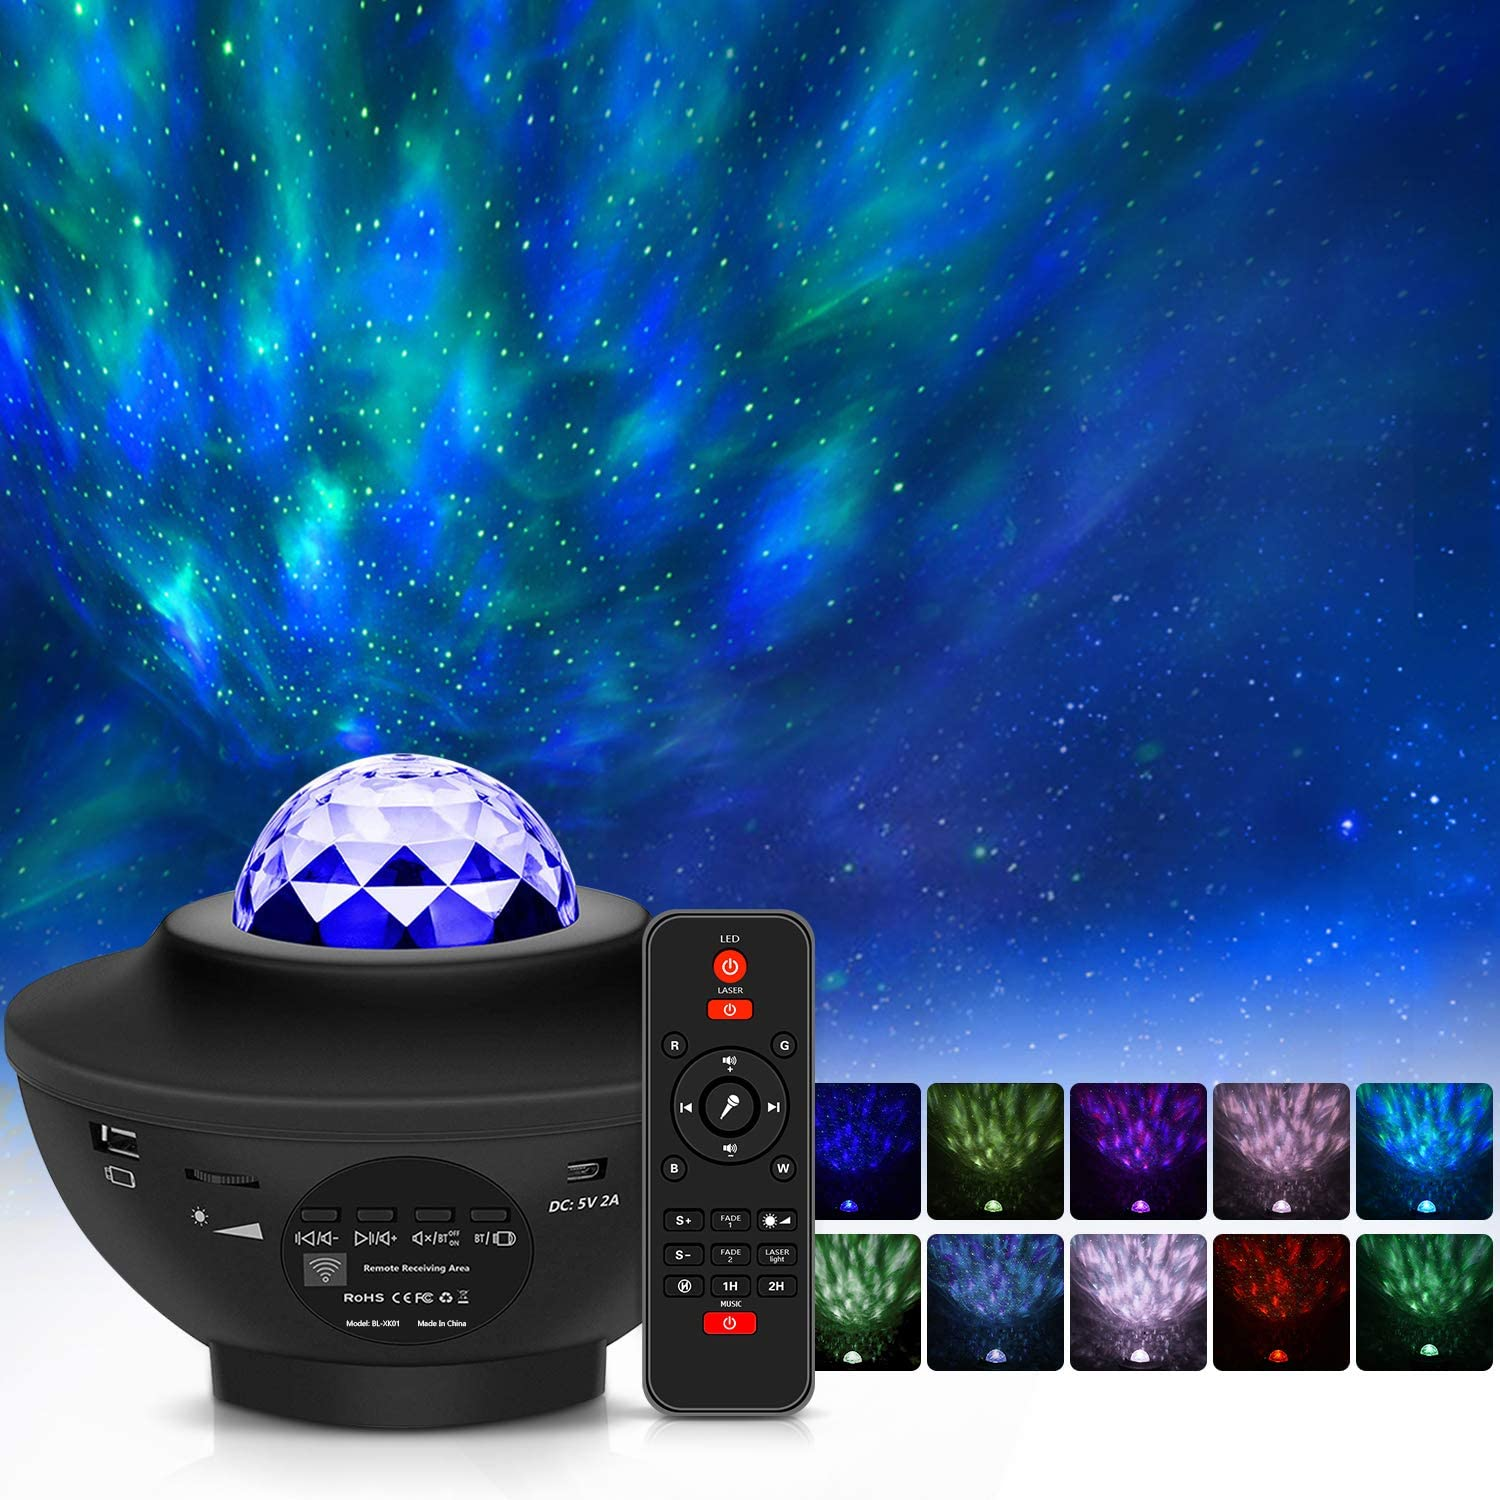 Amazon Com Star Projector Night Light Projector Veipao 3 In 1 Laser Projector Ocean Wave Projector Led Nebula Cloud Light With Bluetooth Music Speaker For Baby Adult Bedroom Decoration Voice Remote Control